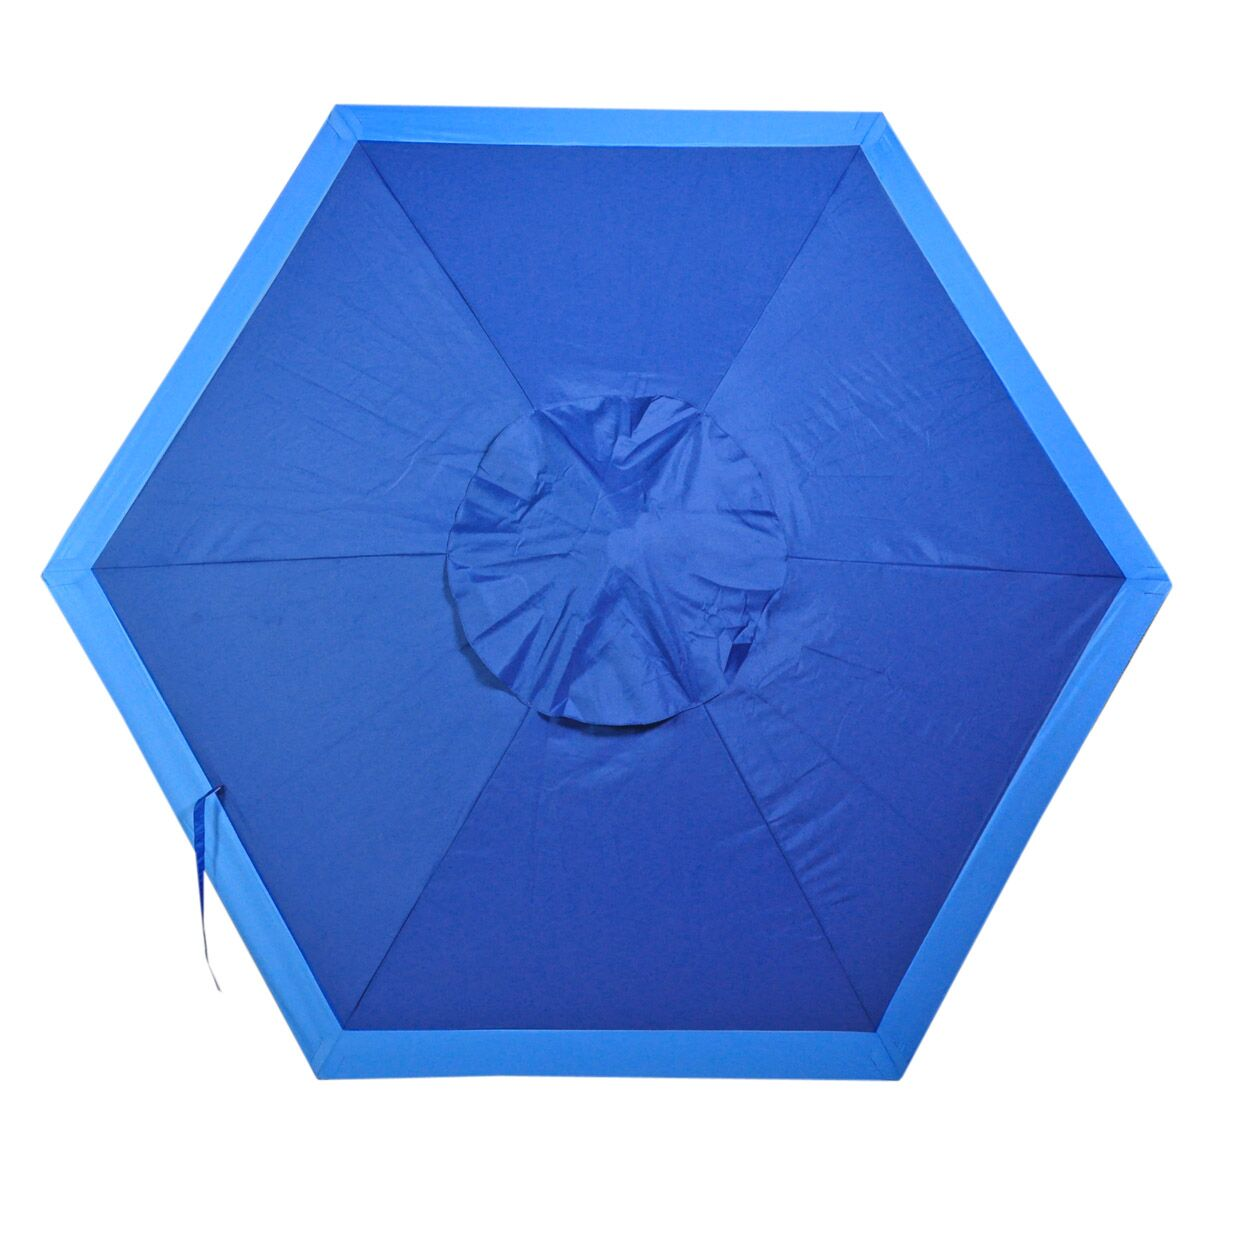 Schulz 8' Market Umbrella Pole Type: Standard Pole